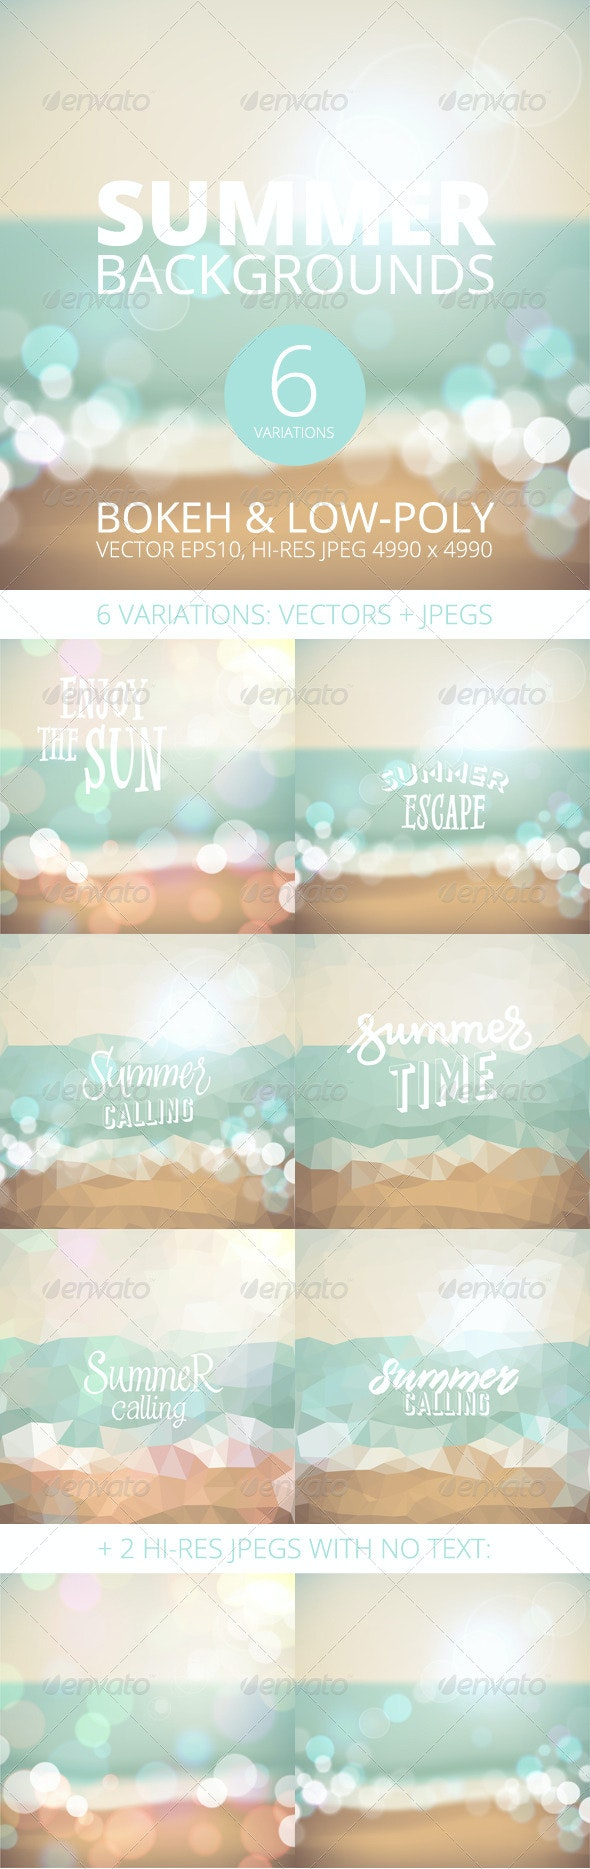 Summer Holiday Tropical Beach Background - Seasons/Holidays Conceptual